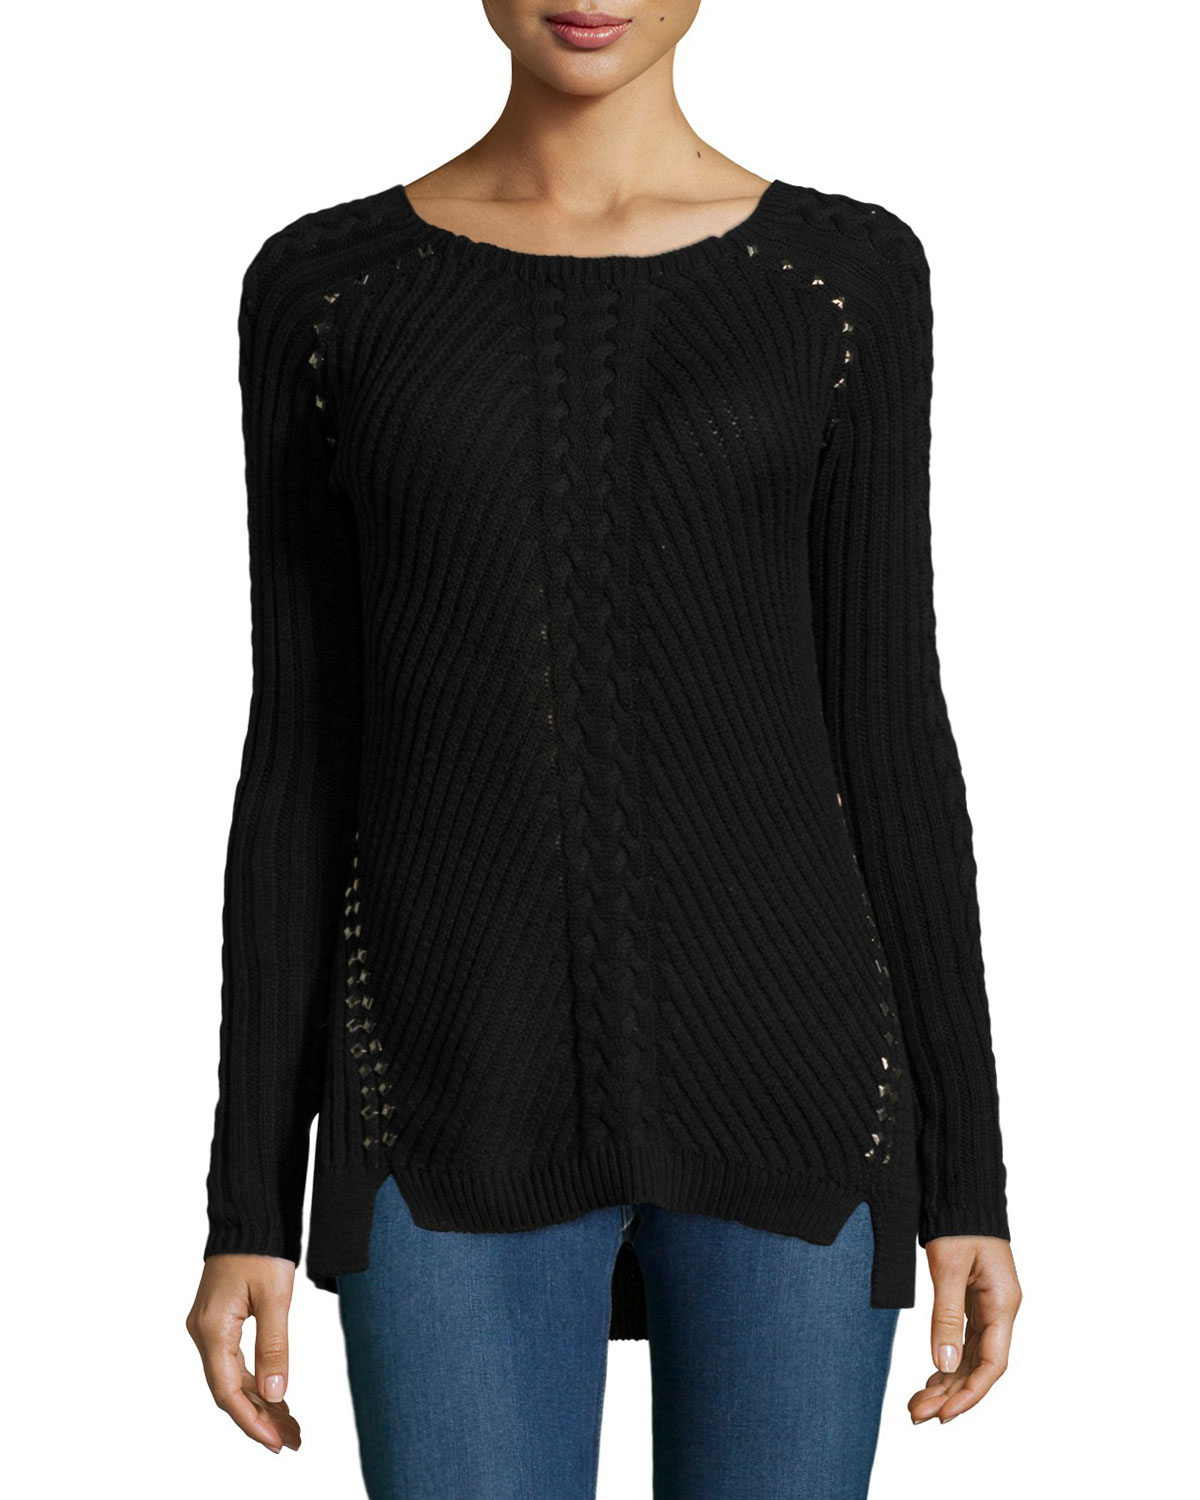 aed8640f7b Lyst - Philosophy Studded High-low Sweater in Black